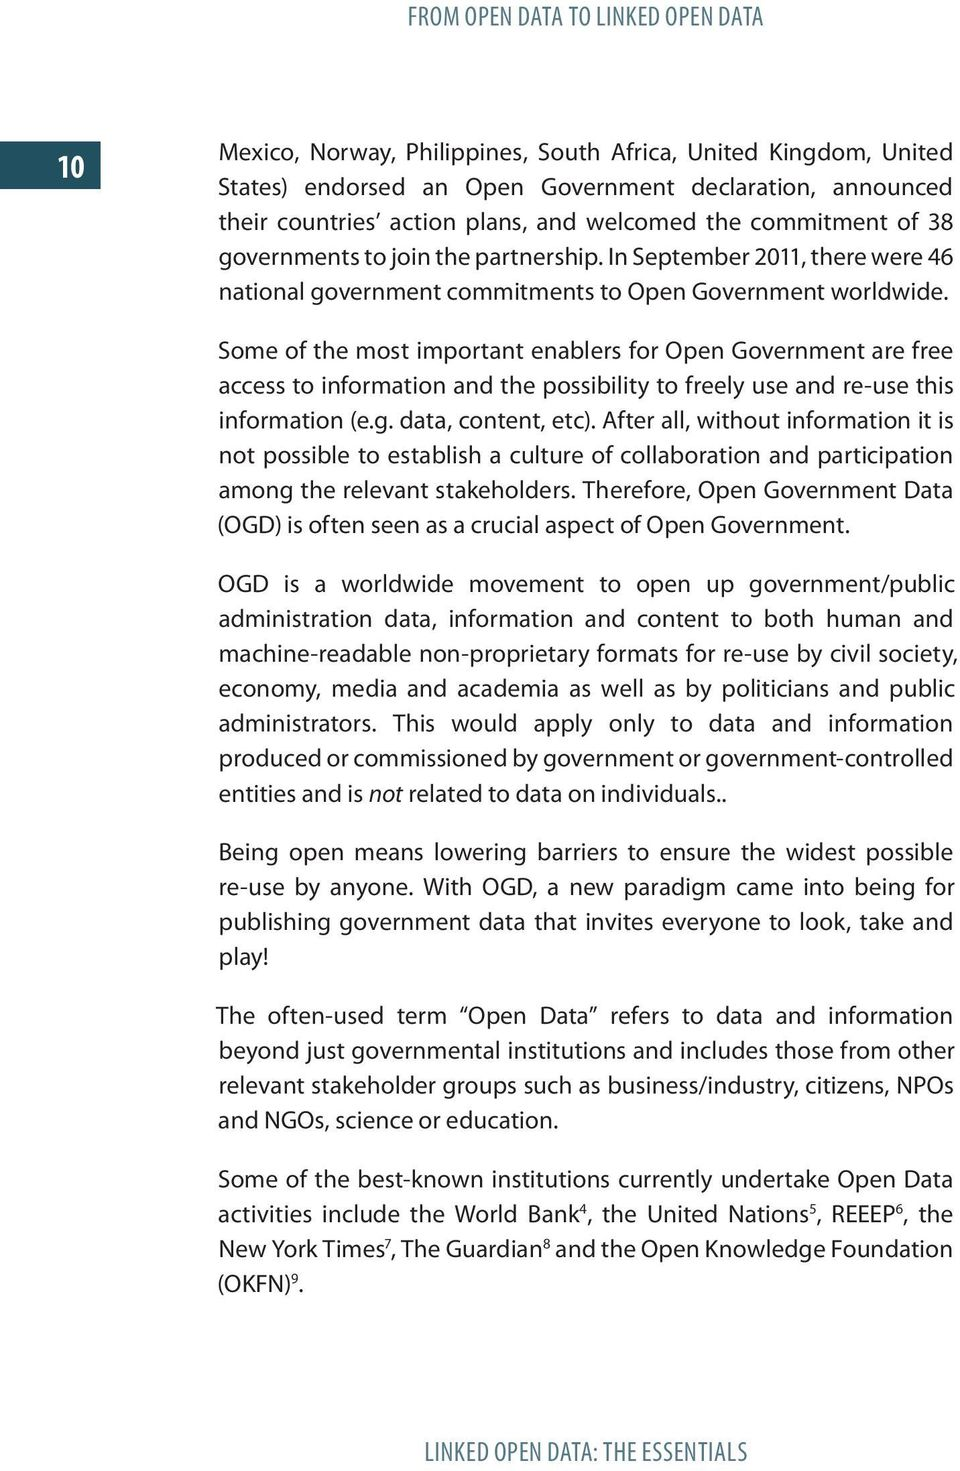 Some of the most important enablers for Open Government are free access to information and the possibility to freely use and re-use this information (e.g. data, content, etc).